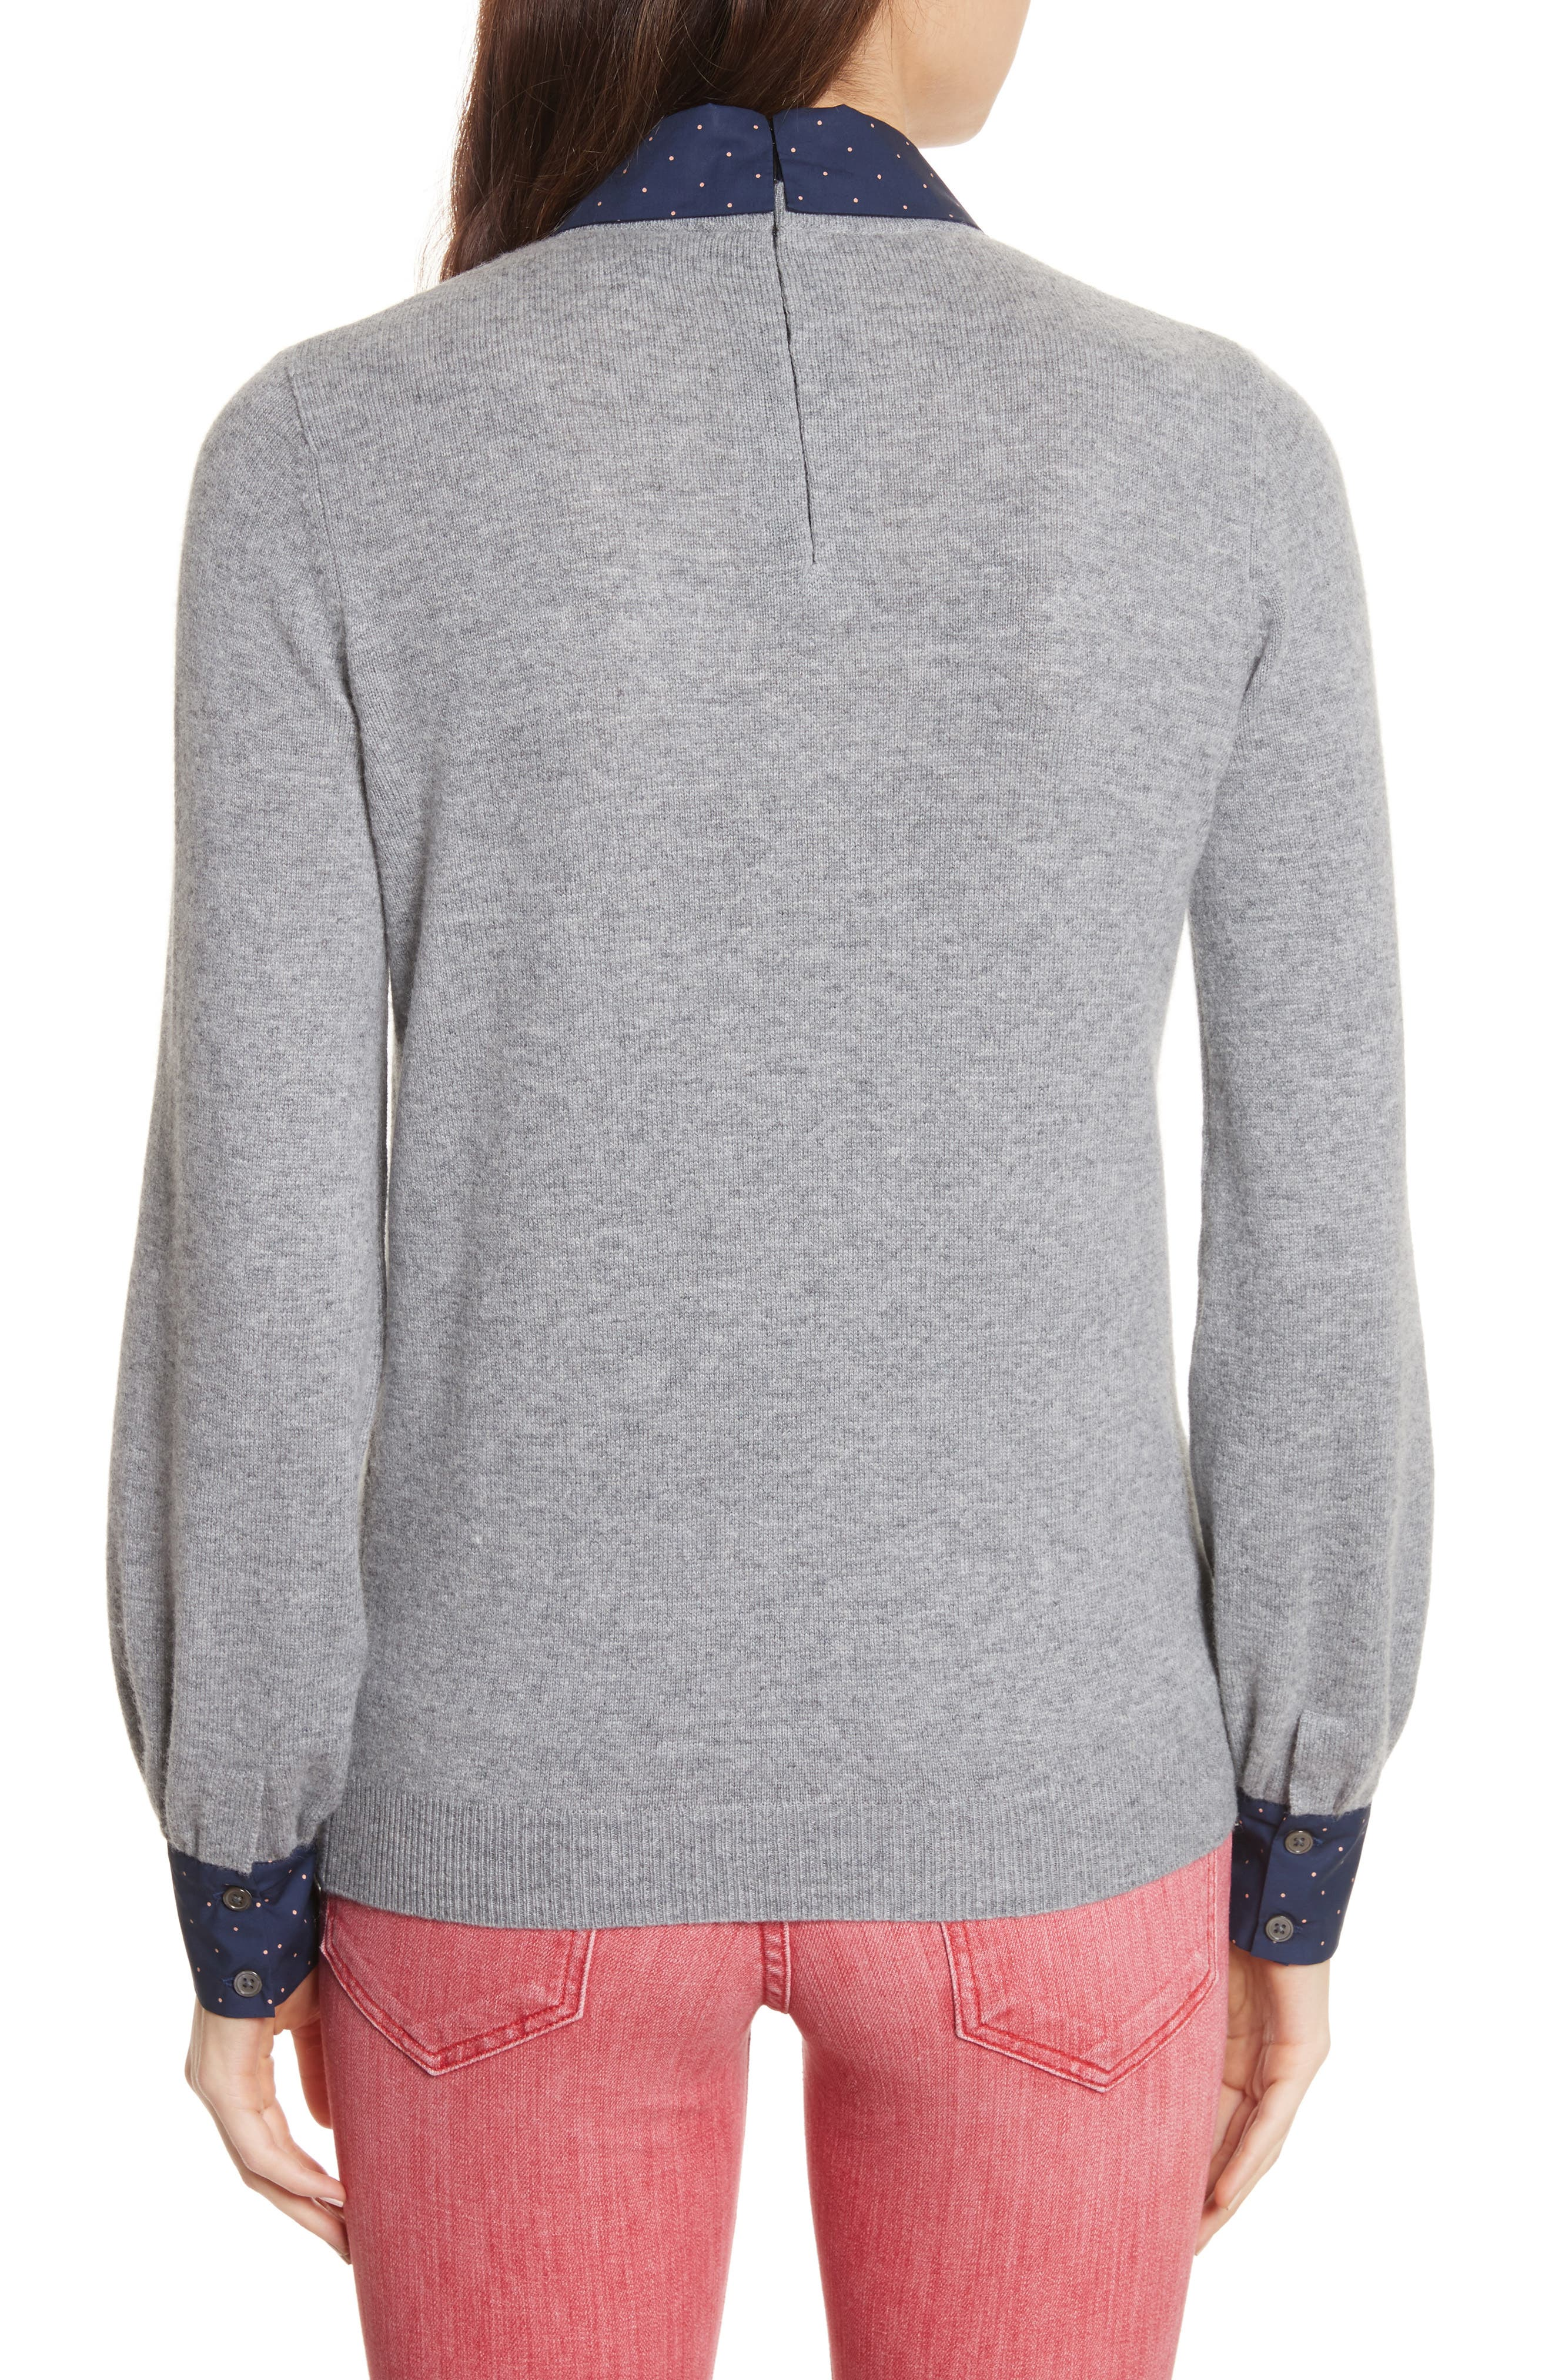 Bahiti Woven Trim Wool & Cashmere Sweater,                             Alternate thumbnail 2, color,                             Heather Grey/ Dark Navy